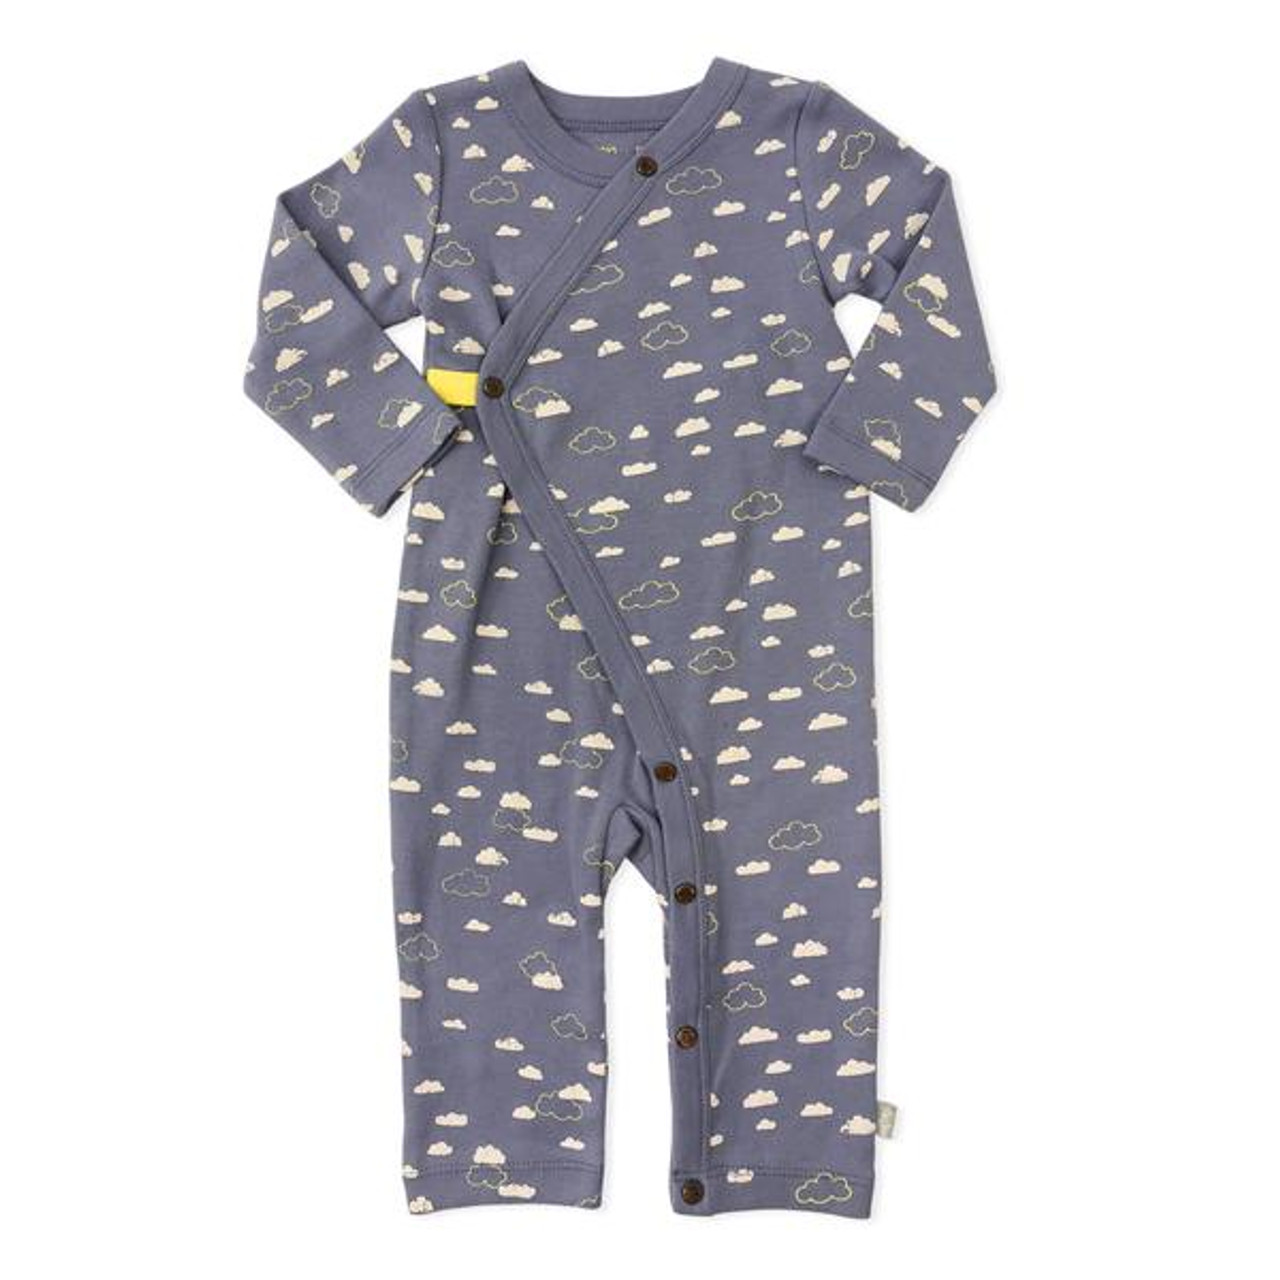 638e9aea60c Organic Cotton Coverall, Cloudy Sky - Spearmint Ventures, LLC